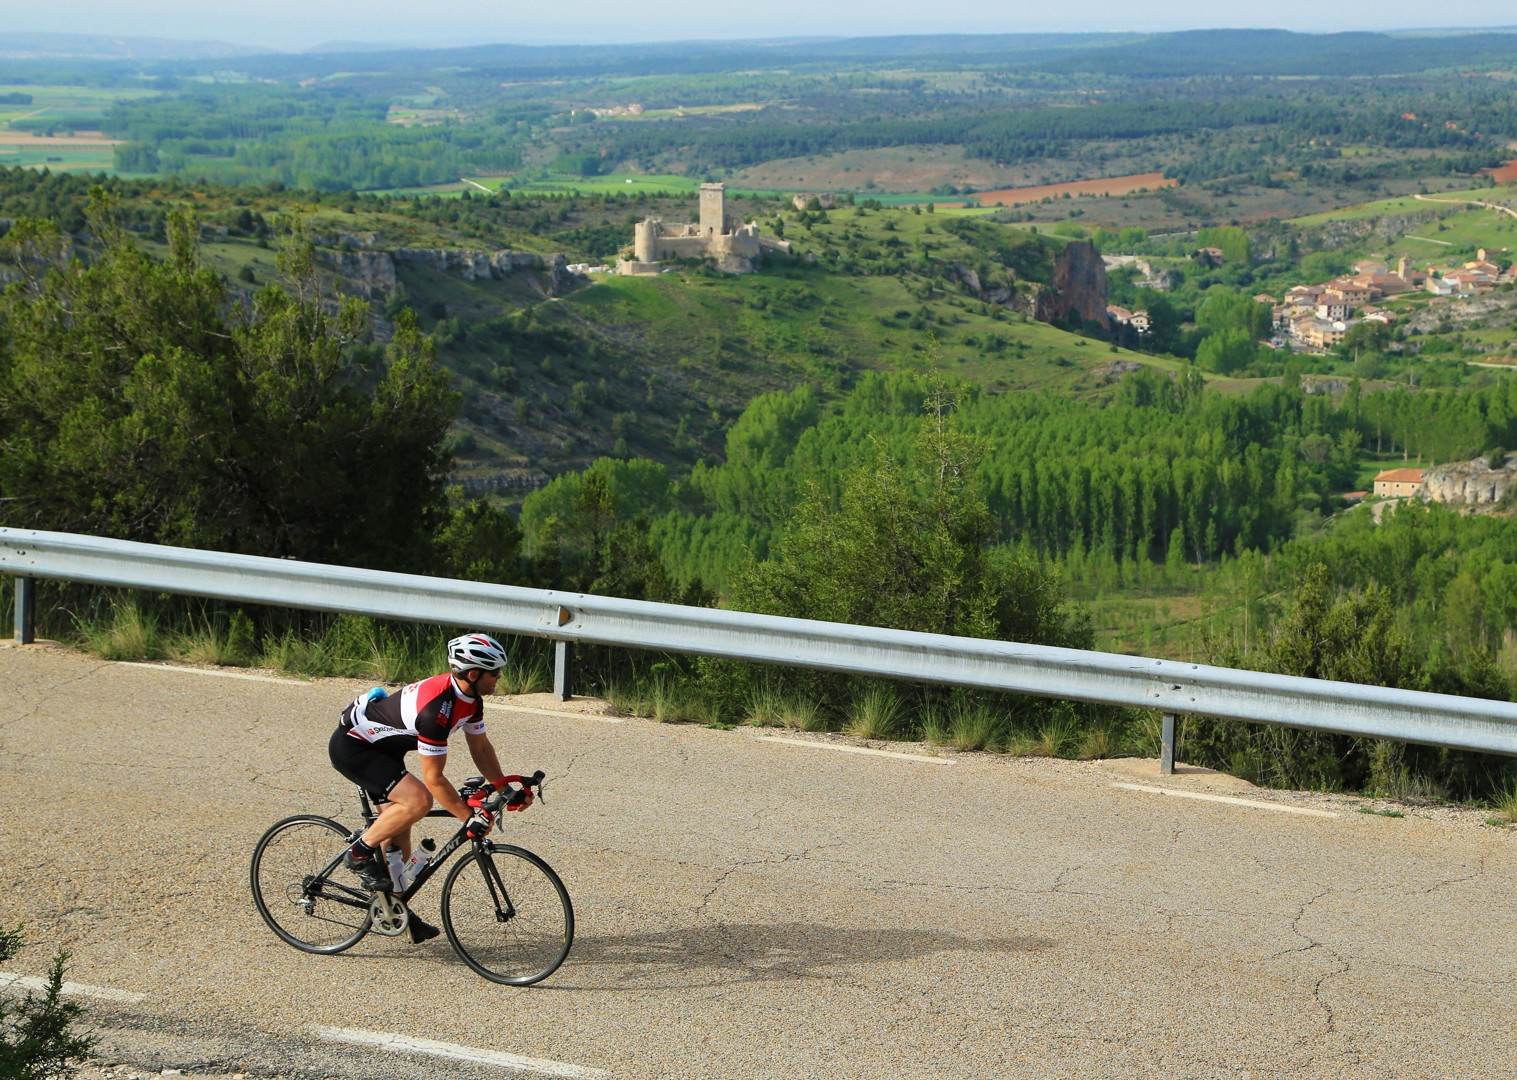 basque-country-to-andalucia-cycling-holiday.jpg - NEW! Spain - Basque Country to Andalucia - 21 Day - Road Cycling